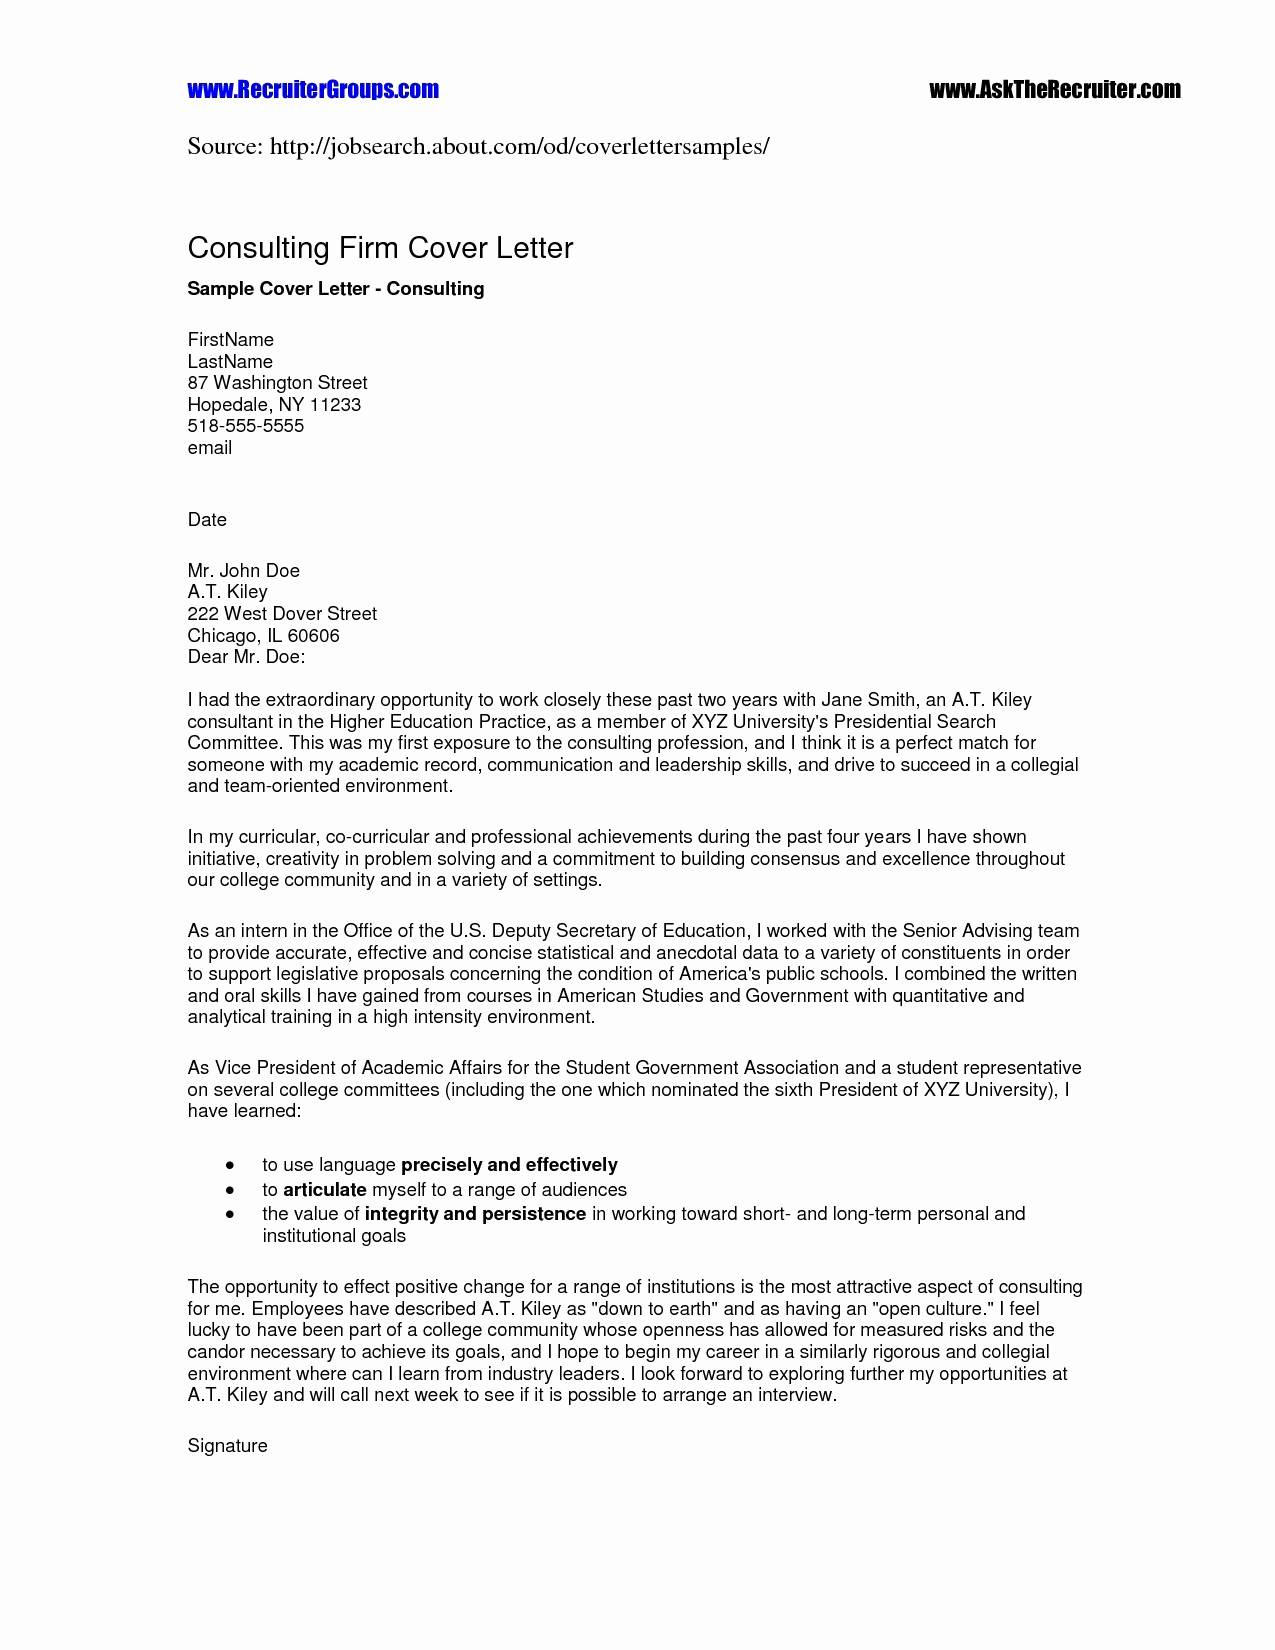 Marketing Cover Letter Template - 14 Beautiful Marketing Covering Letter Resume Templates Resume